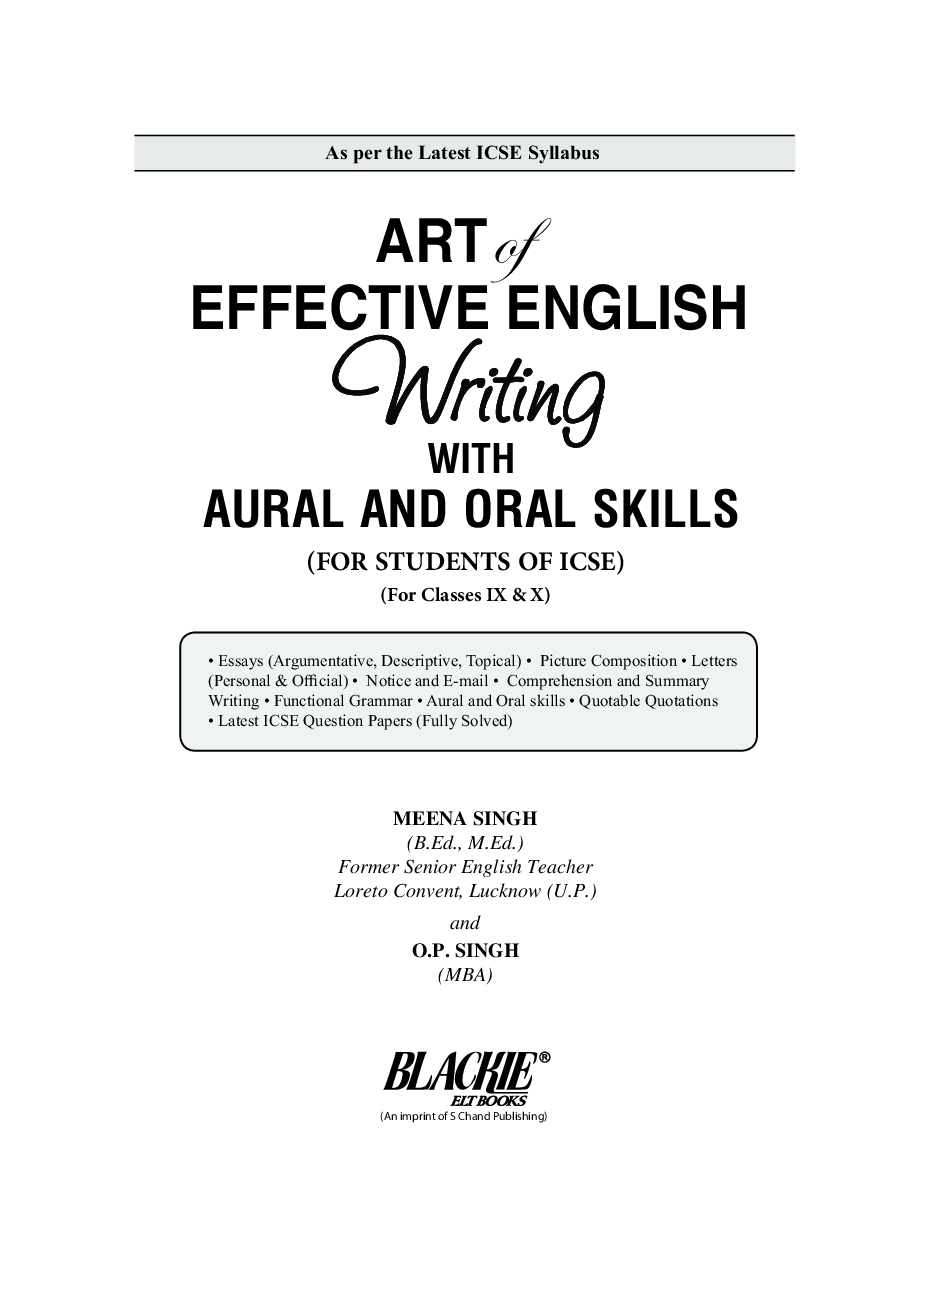 ICSE Art of Effective English Writing for Classes IX-X (2021 Edition) - Page 2